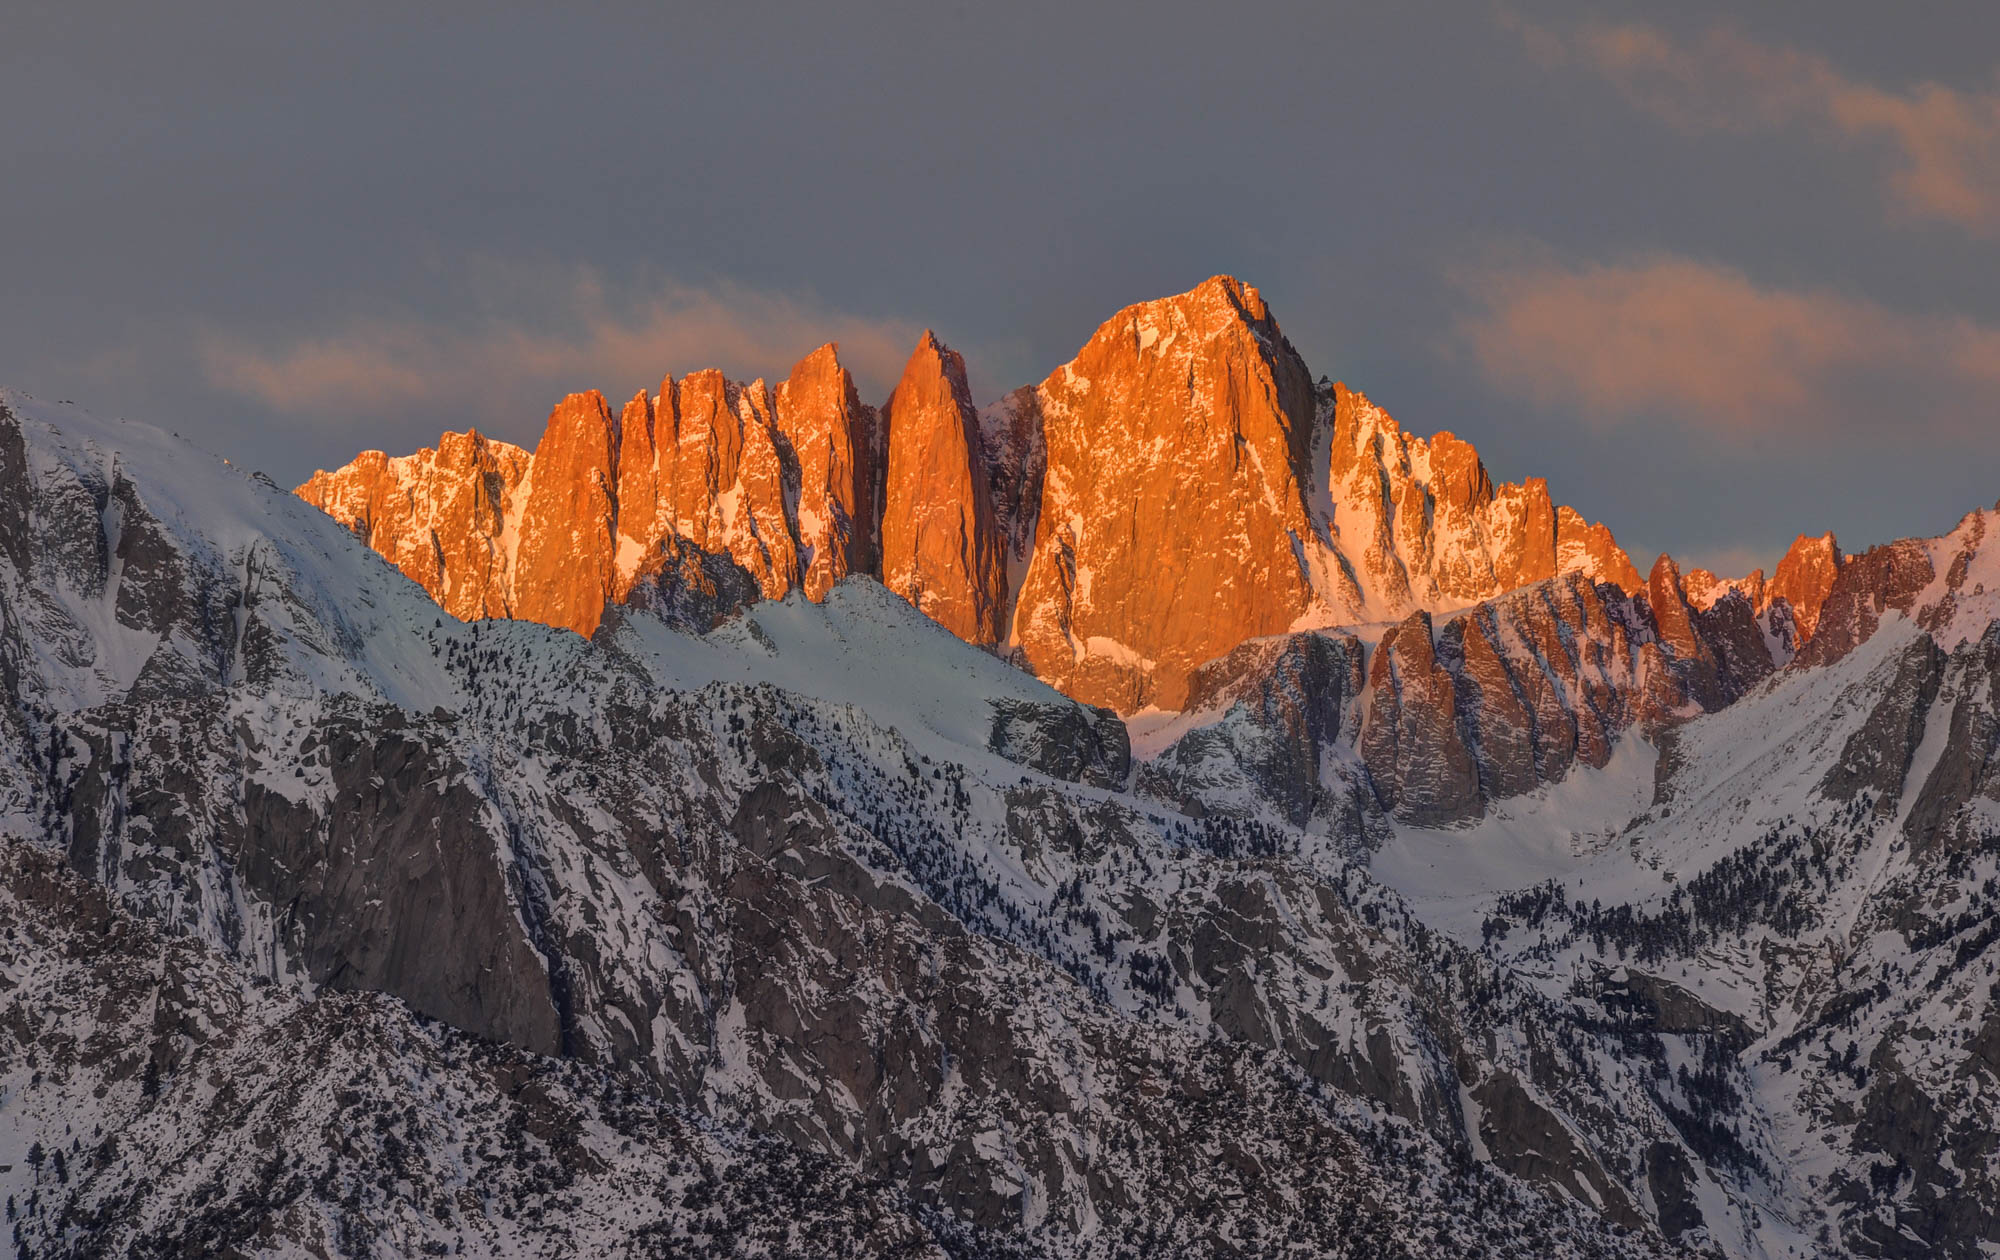 Mount Whitney alpenglow, Inyo National Forest, California